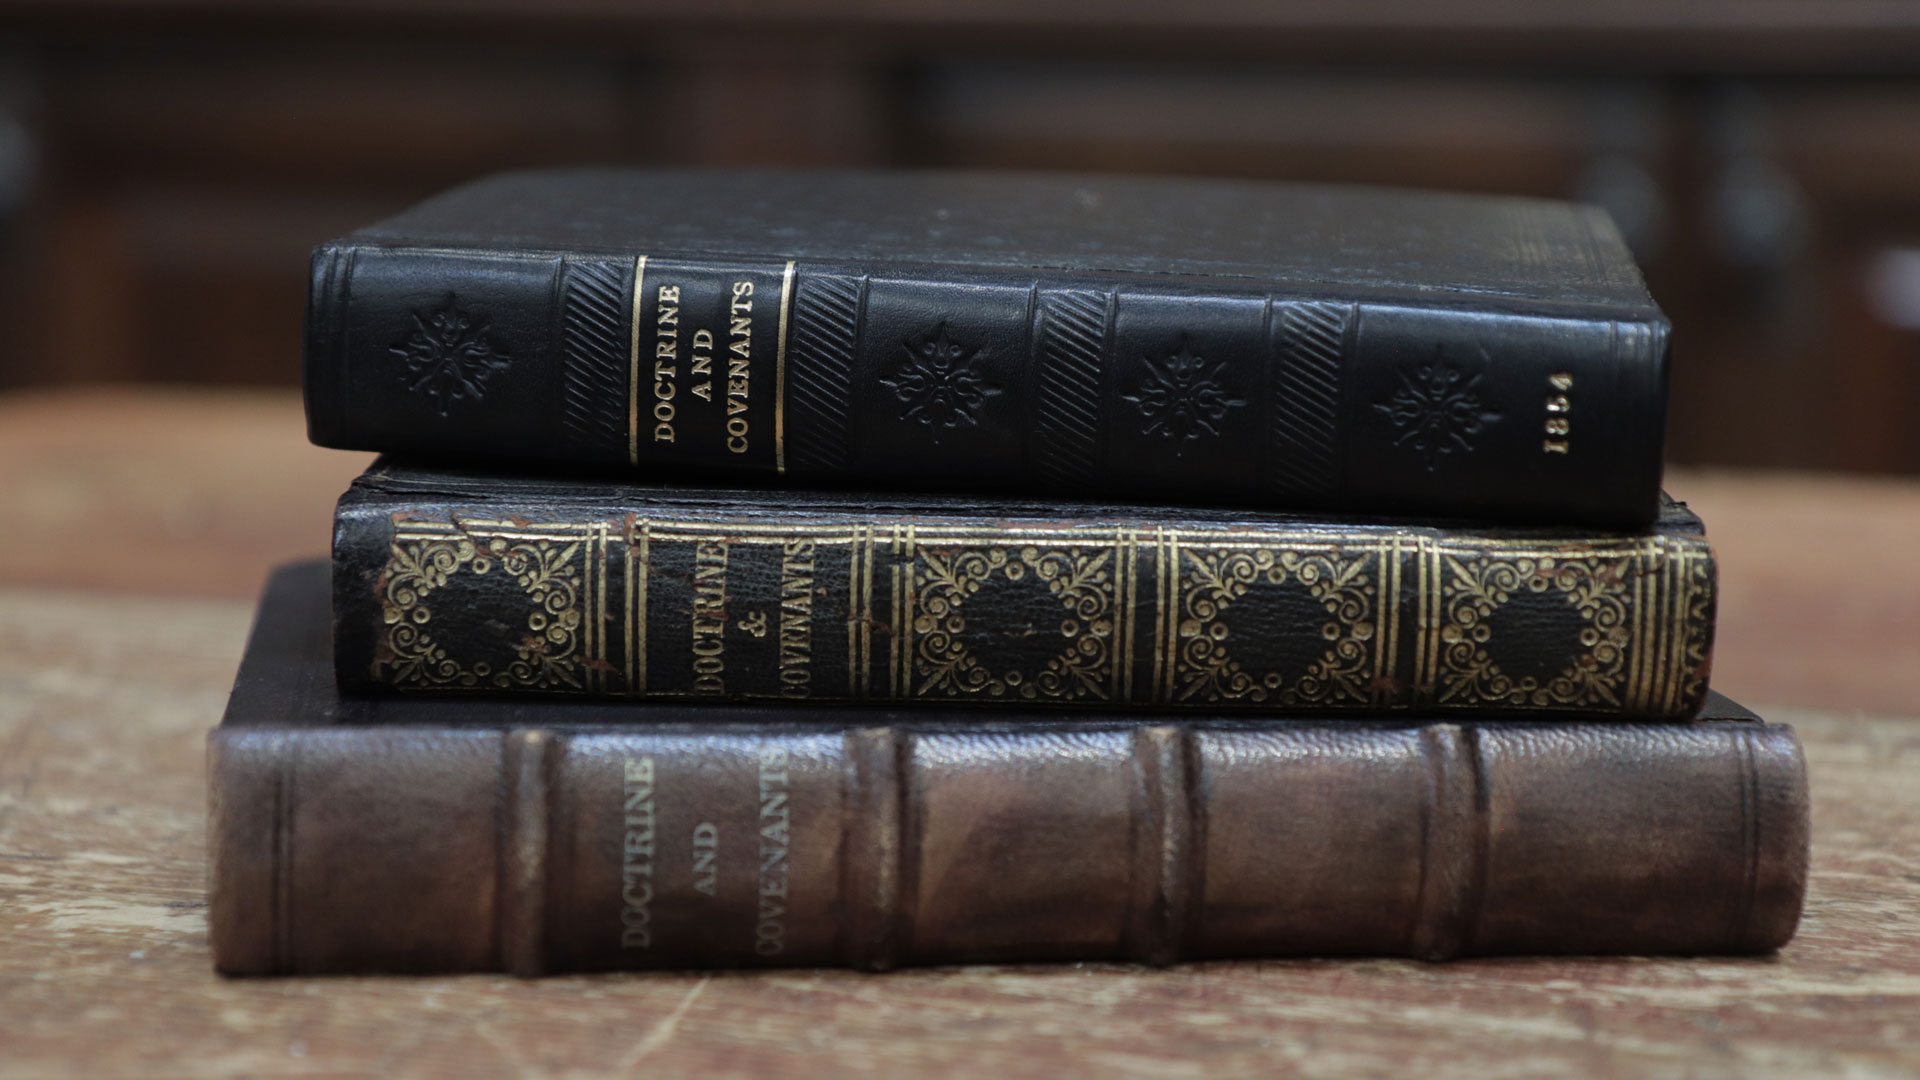 Antique editions of the Doctrine and Covenants, courtesy of Reid Moon. Photograph by Daniel Smith.